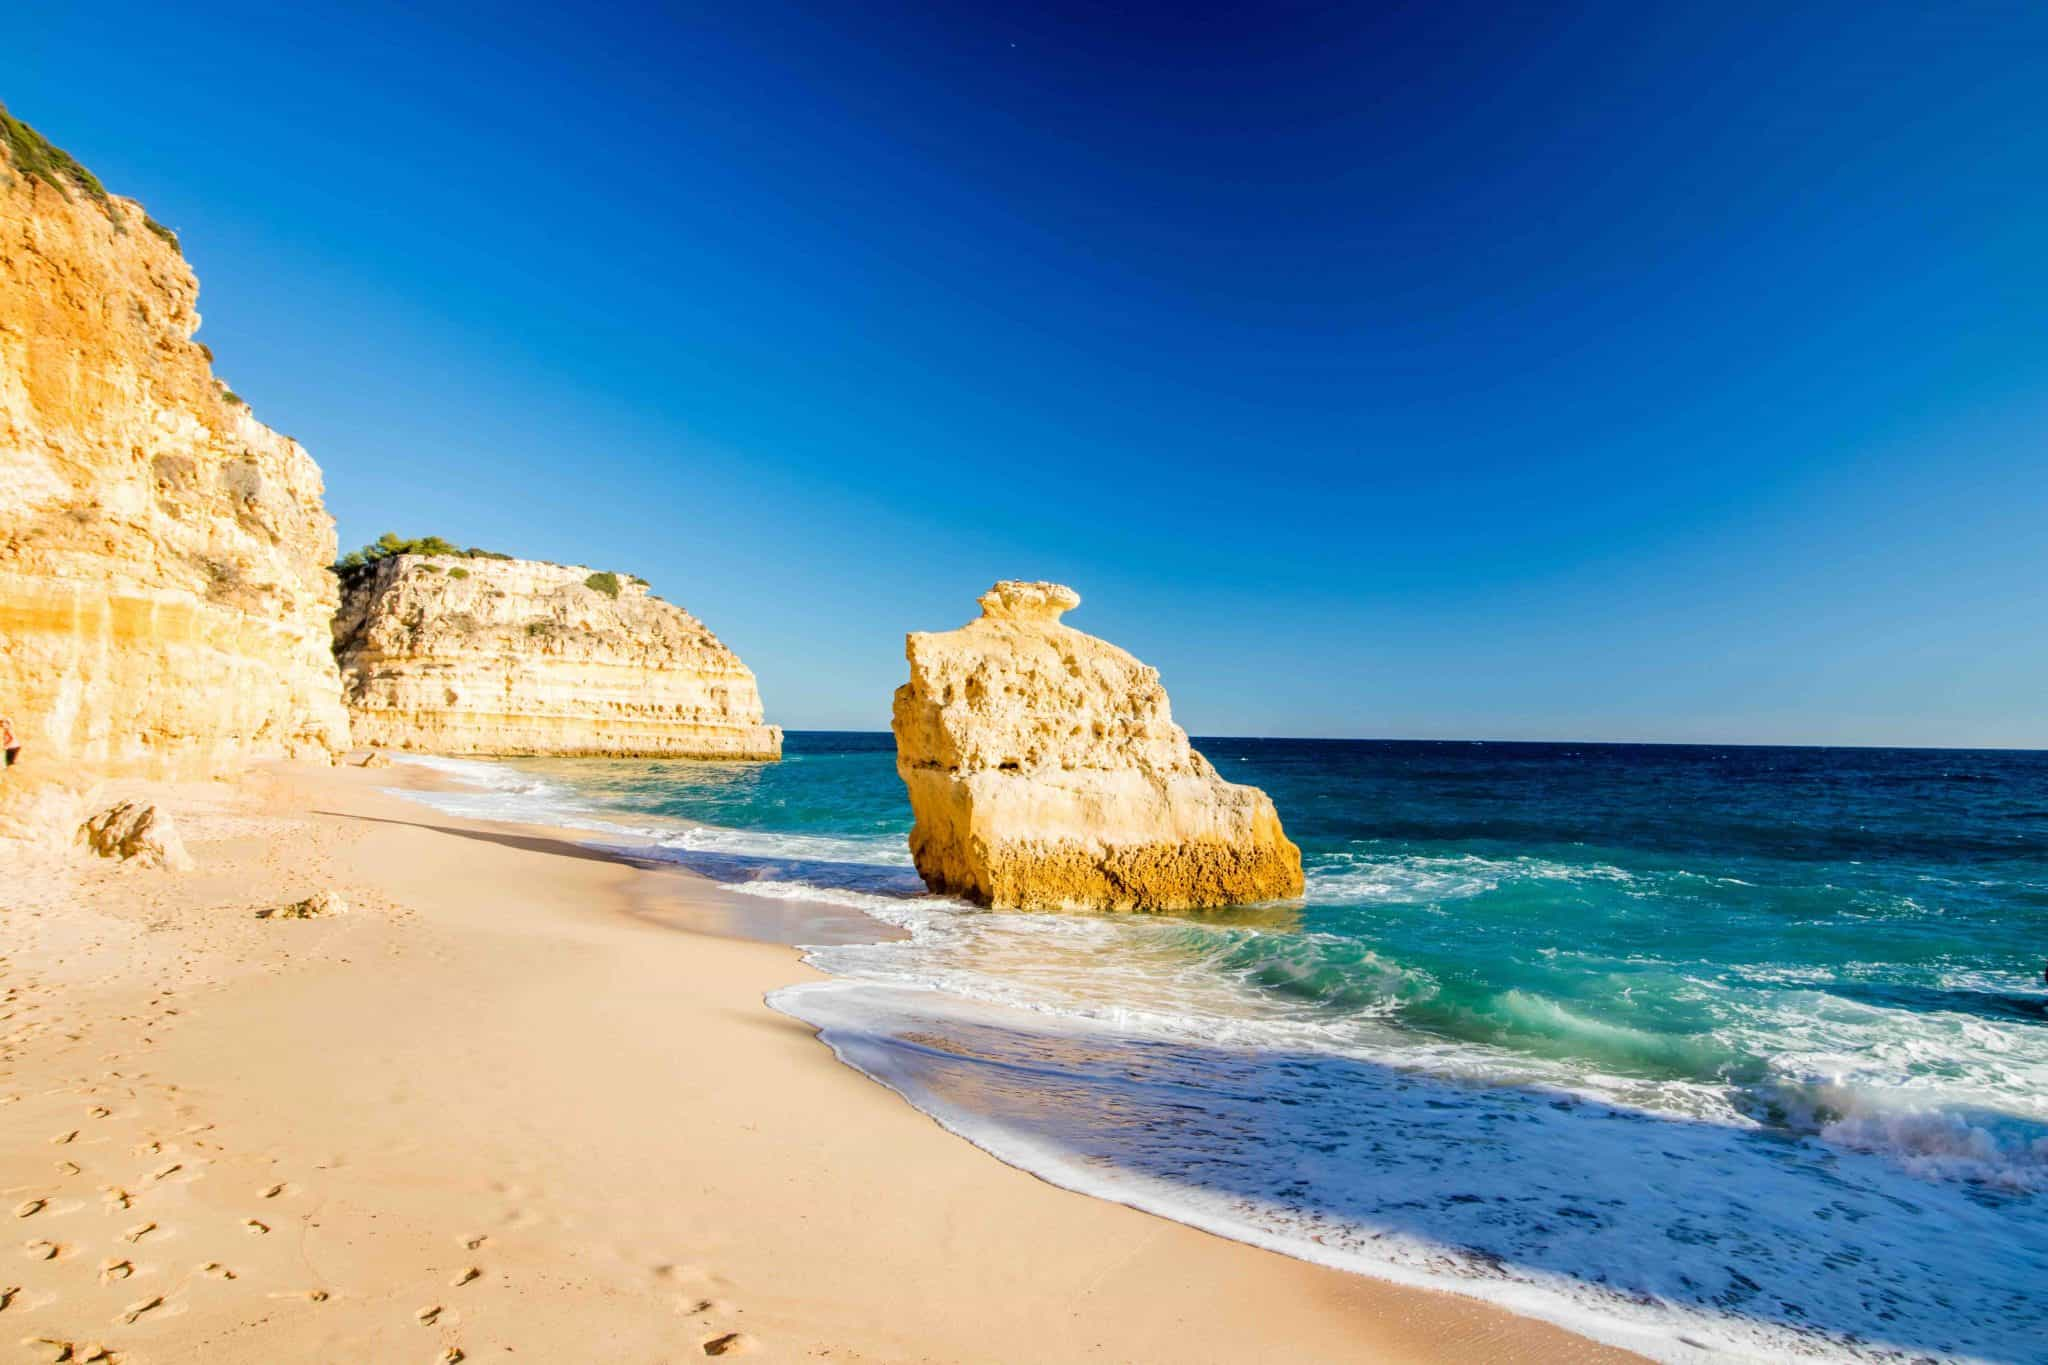 Praia da Marinha - Best Beaches in the Algarve